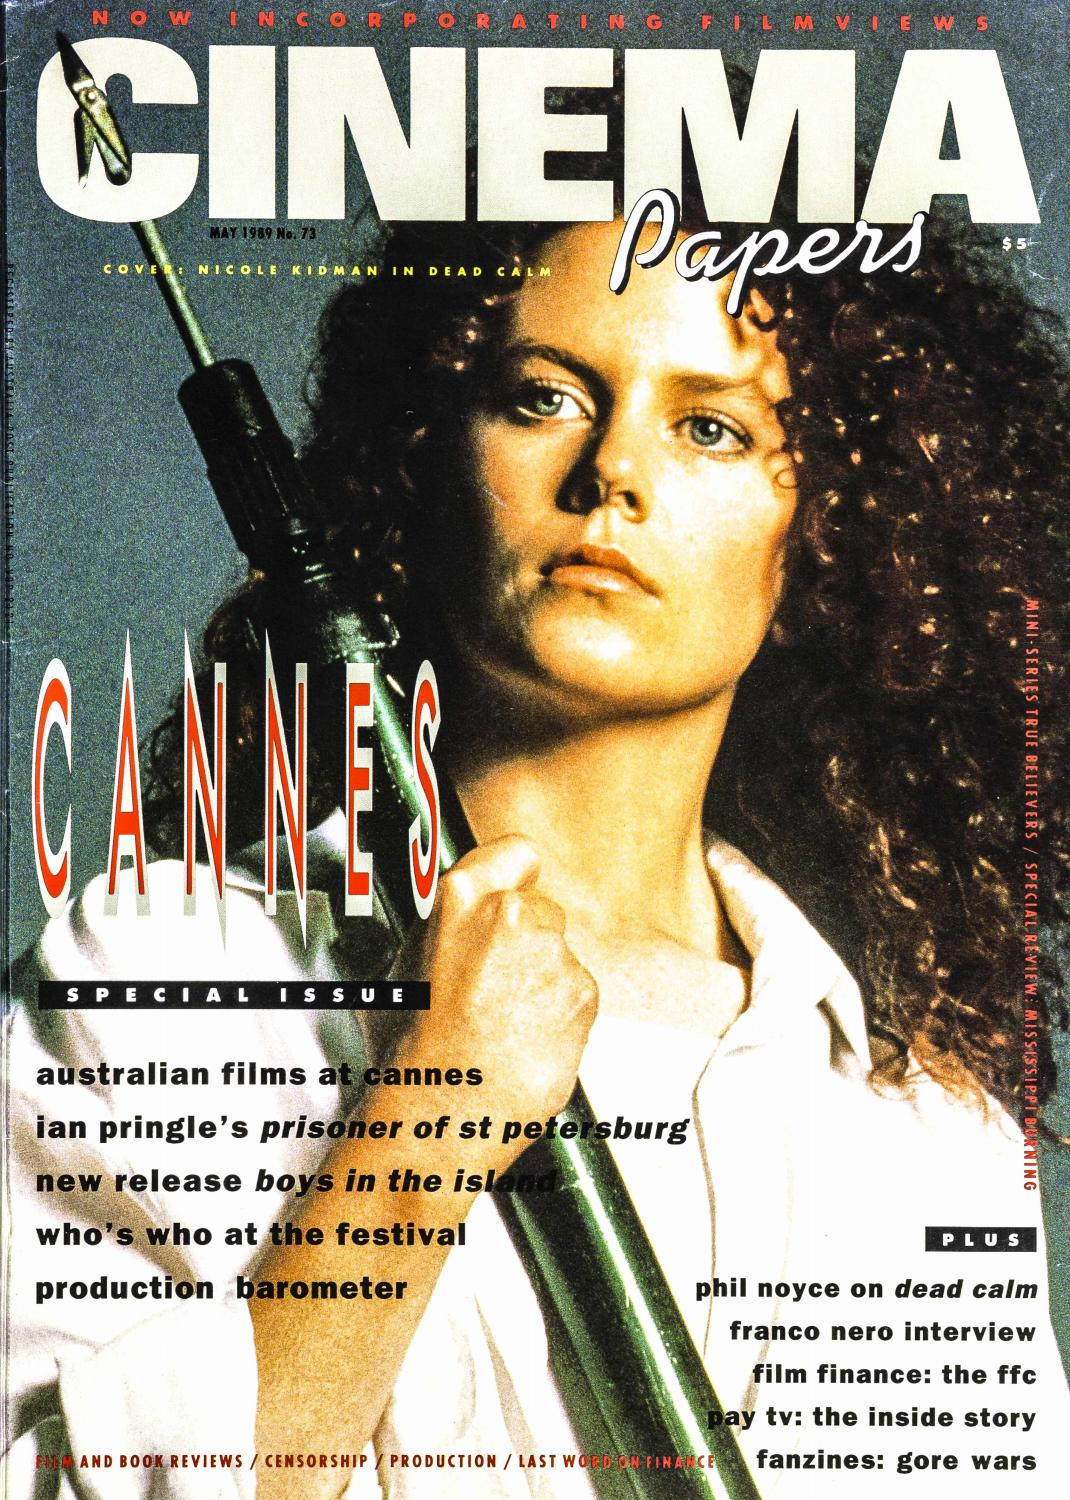 cinema papers no 73 may 1989 by uow library issuu